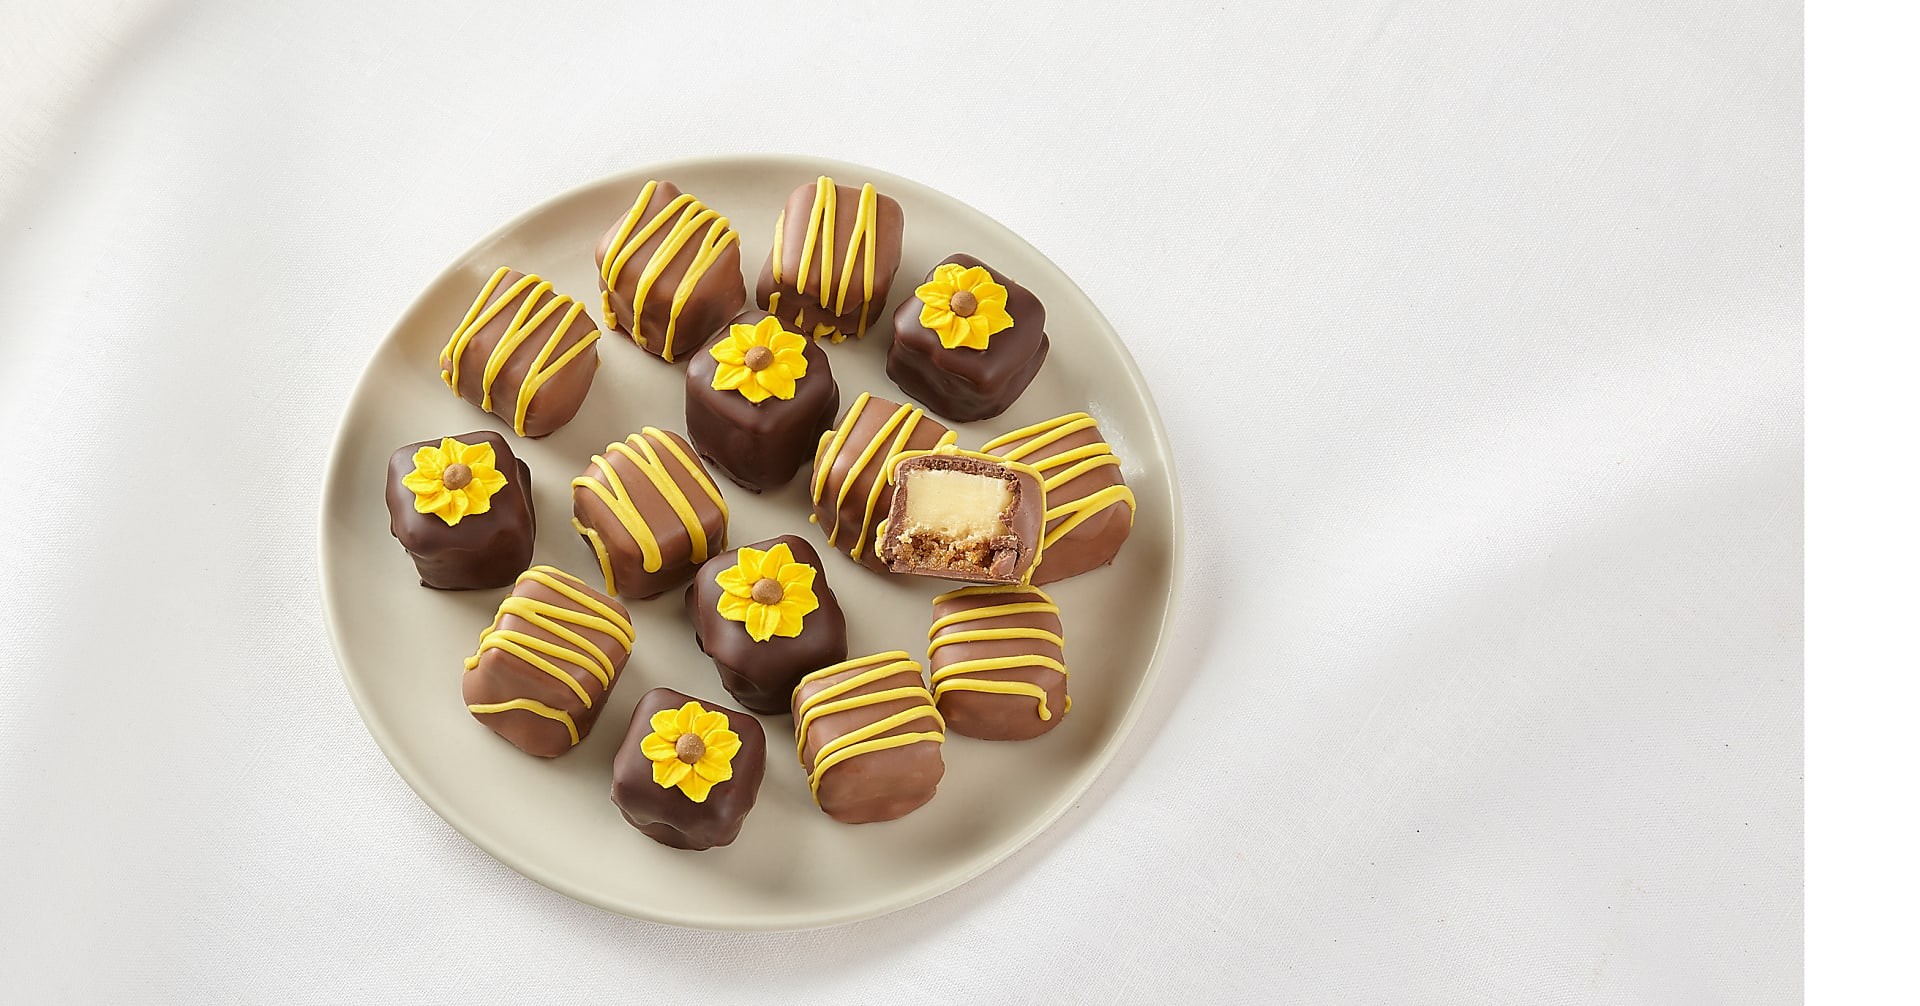 Sunny Days Chocolate-Covered Cheesecake Bites - Image 2 Of 2